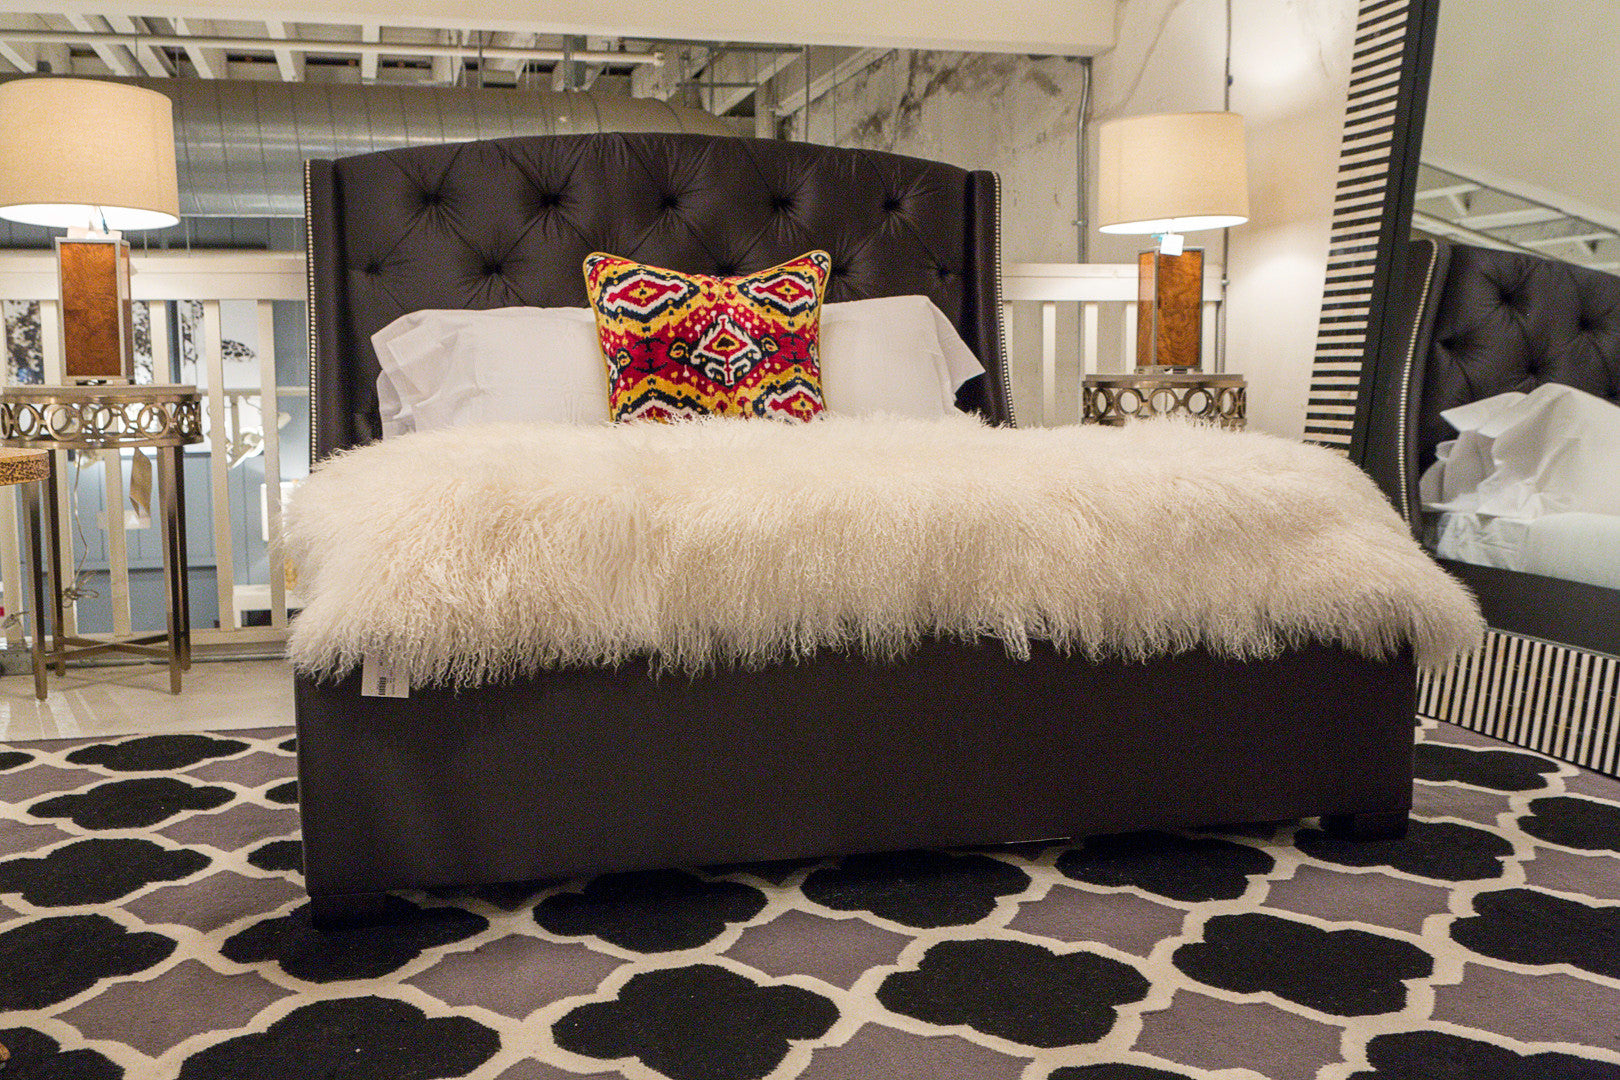 natural tufted furniture oliva tone bed of itm in rustic queen america l